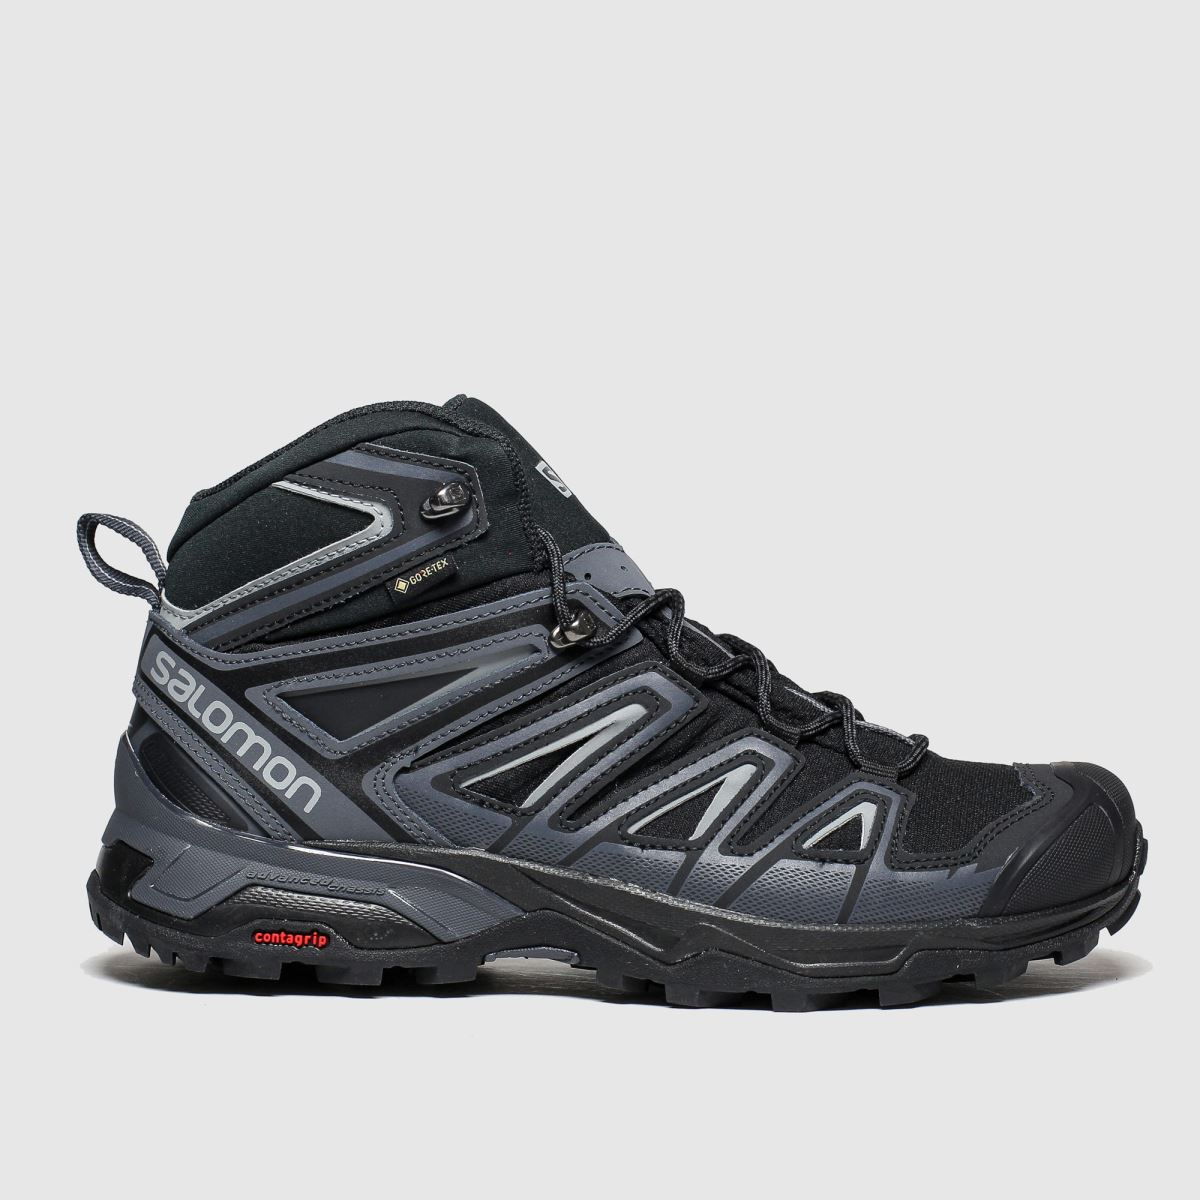 Salomon Salomon Black X Ultra 3 Mid Gtx Trainers